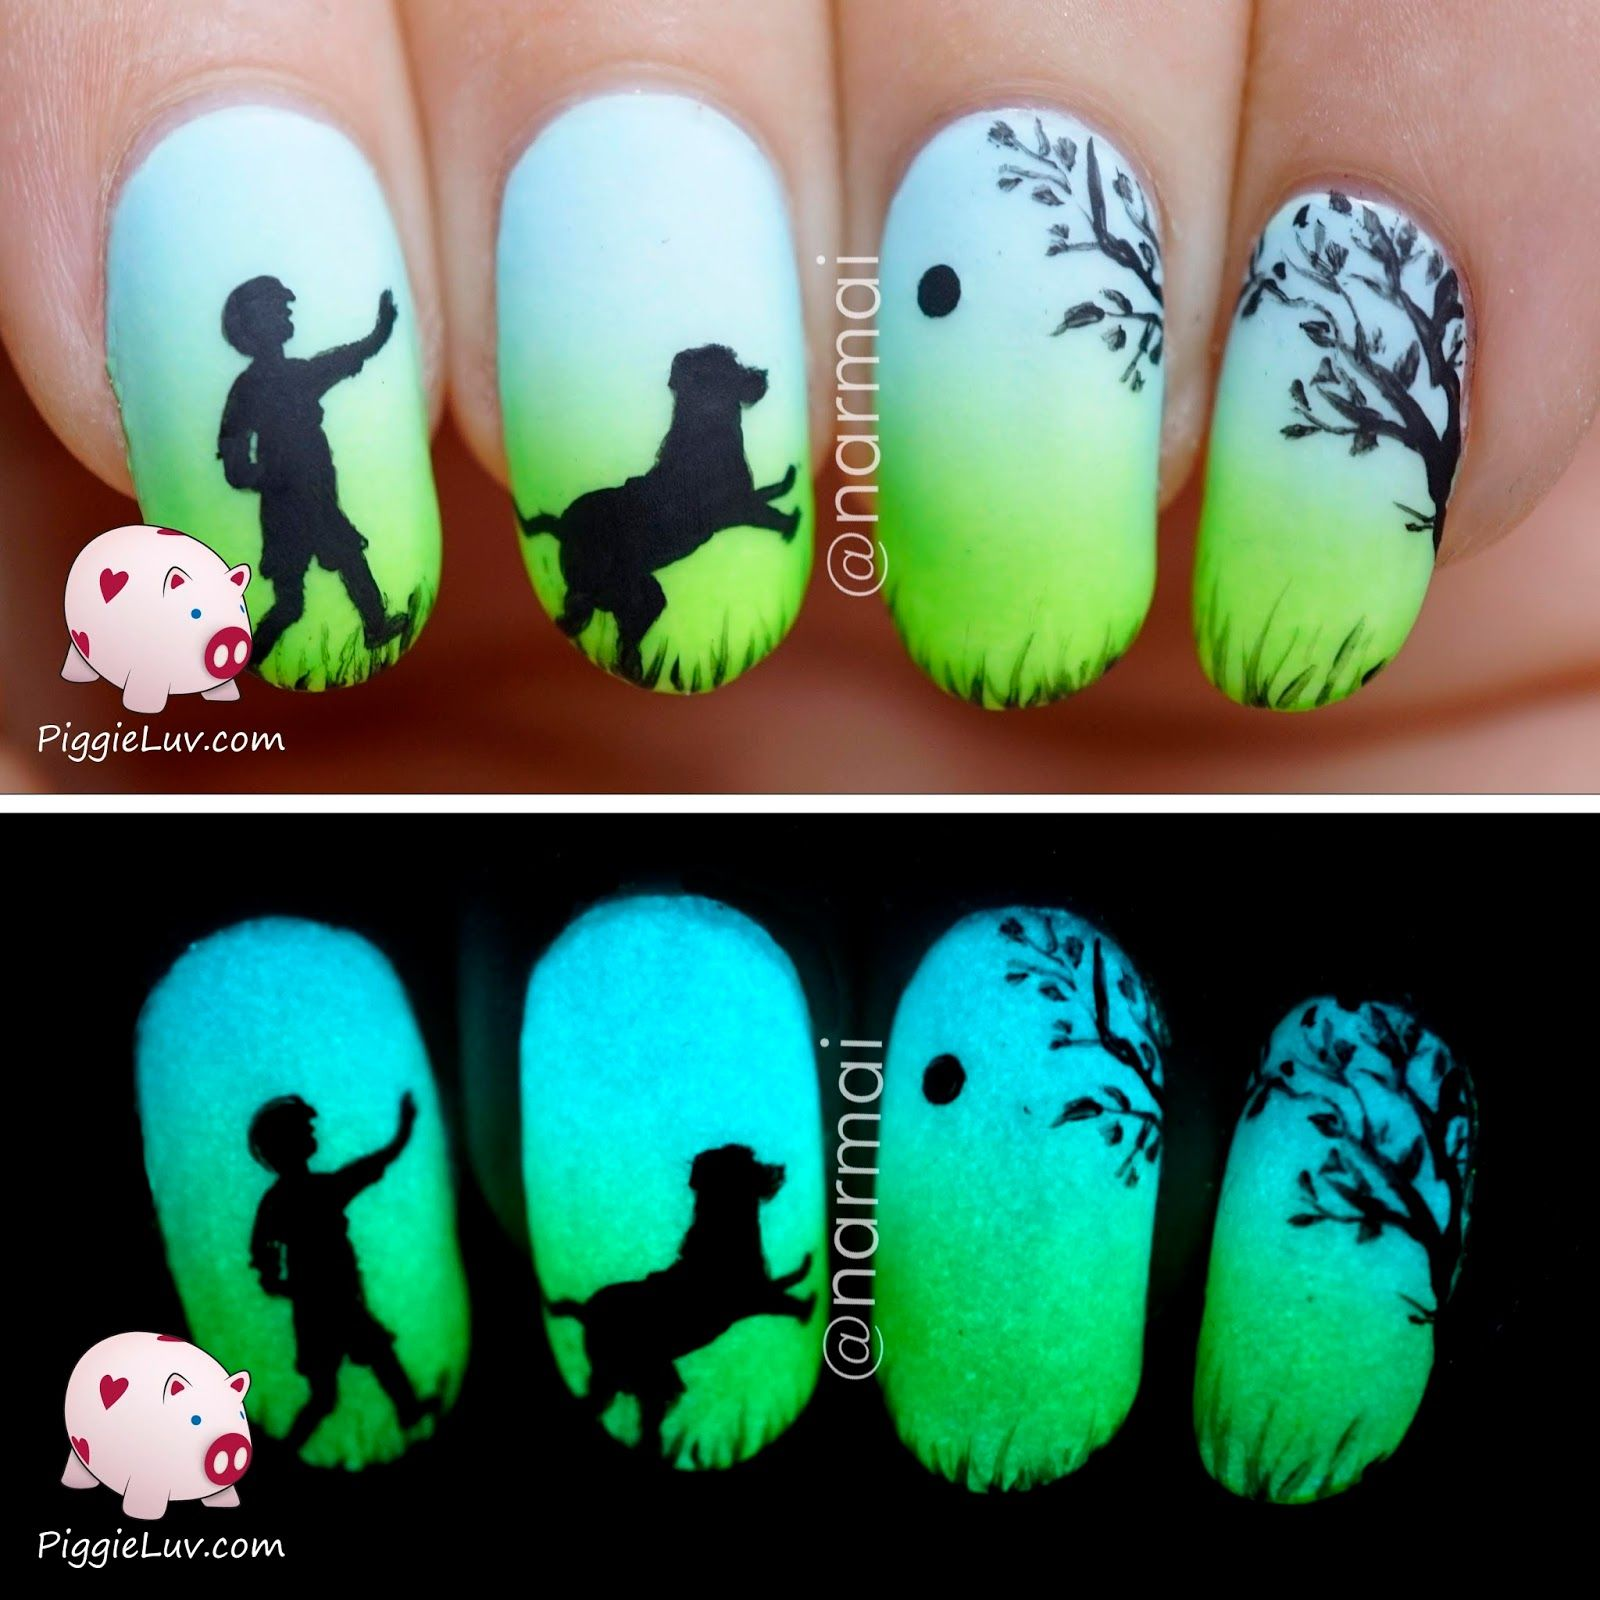 Epic Dog Story (5 glow in the dark manis!!!) | Boys, Manicures and ...